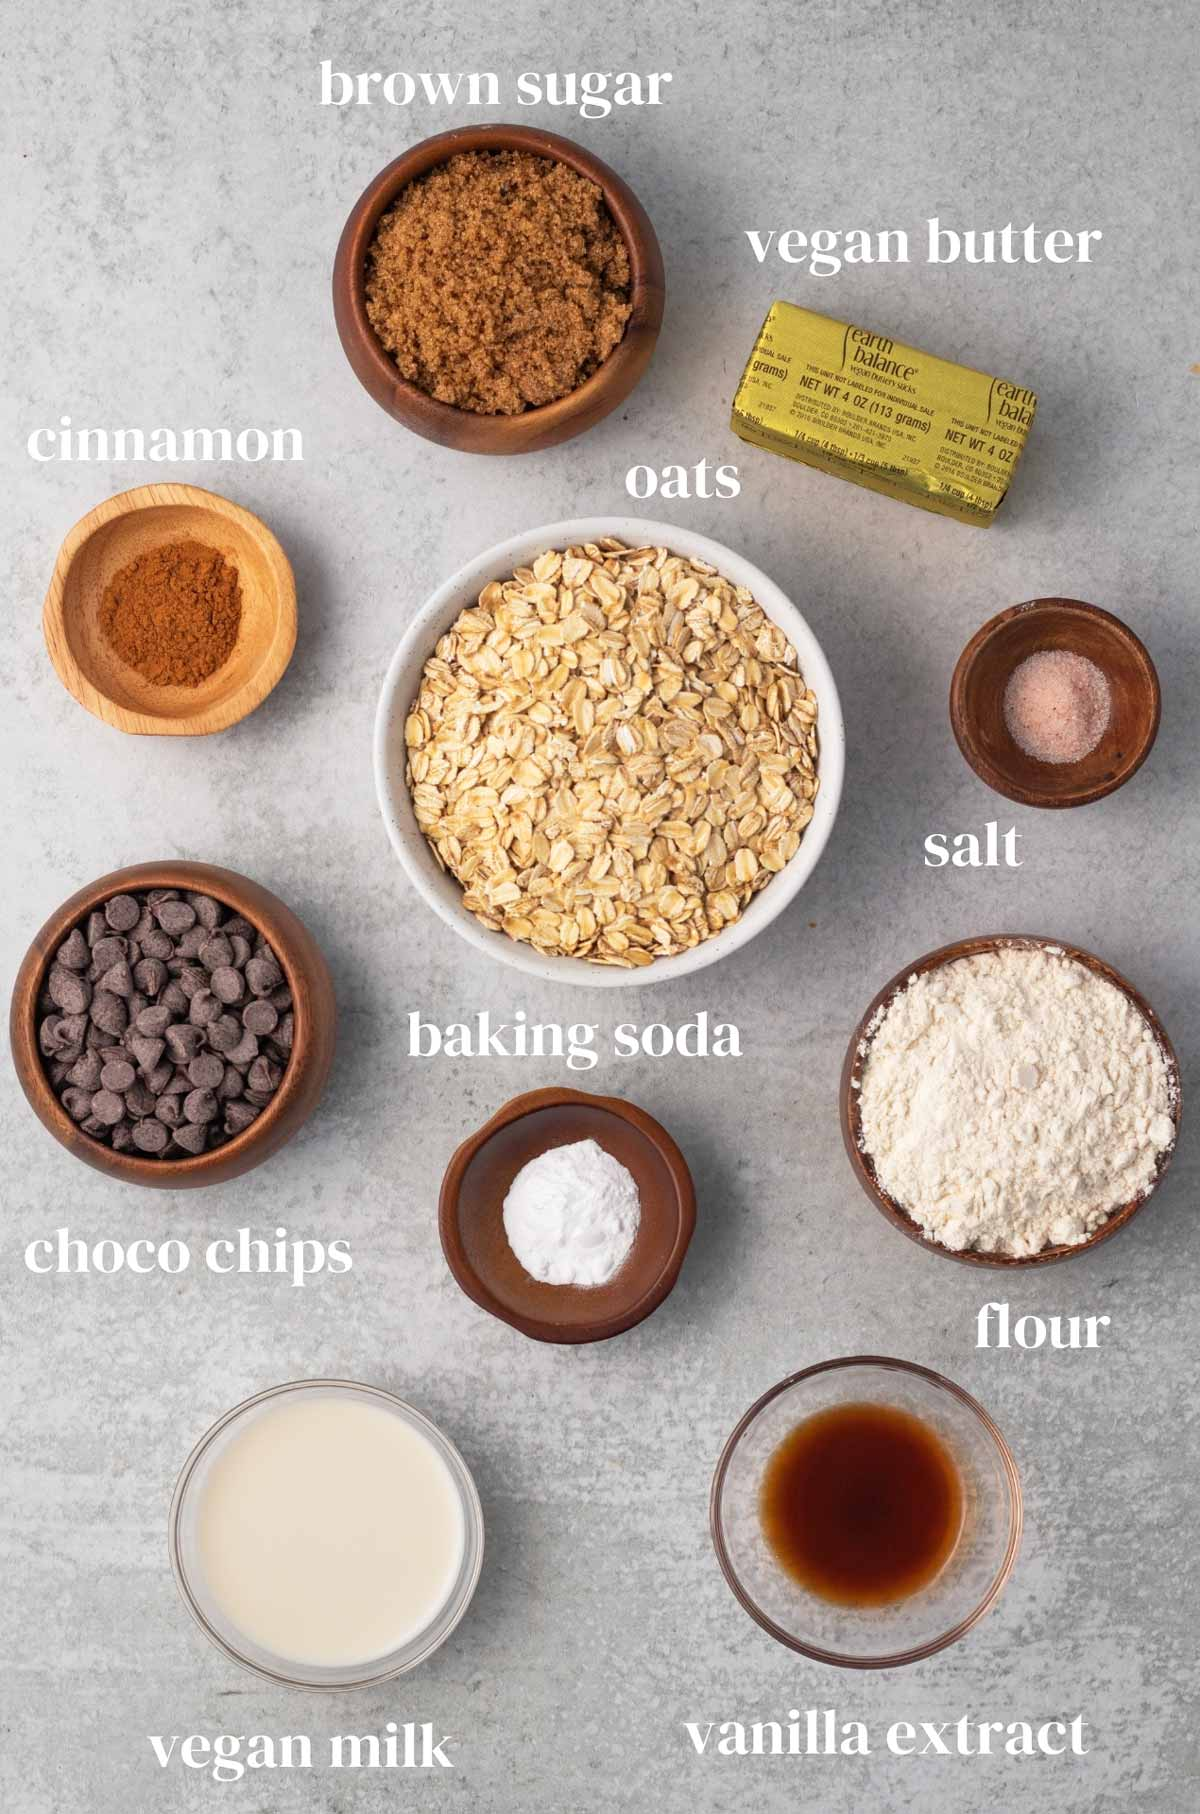 Ingredients laid out on a surface: brown sugar, vegan butter, cinnamon, oats, salt, chocolate chips, baking soda, flour, dairy-free milk, and vanilla extract.